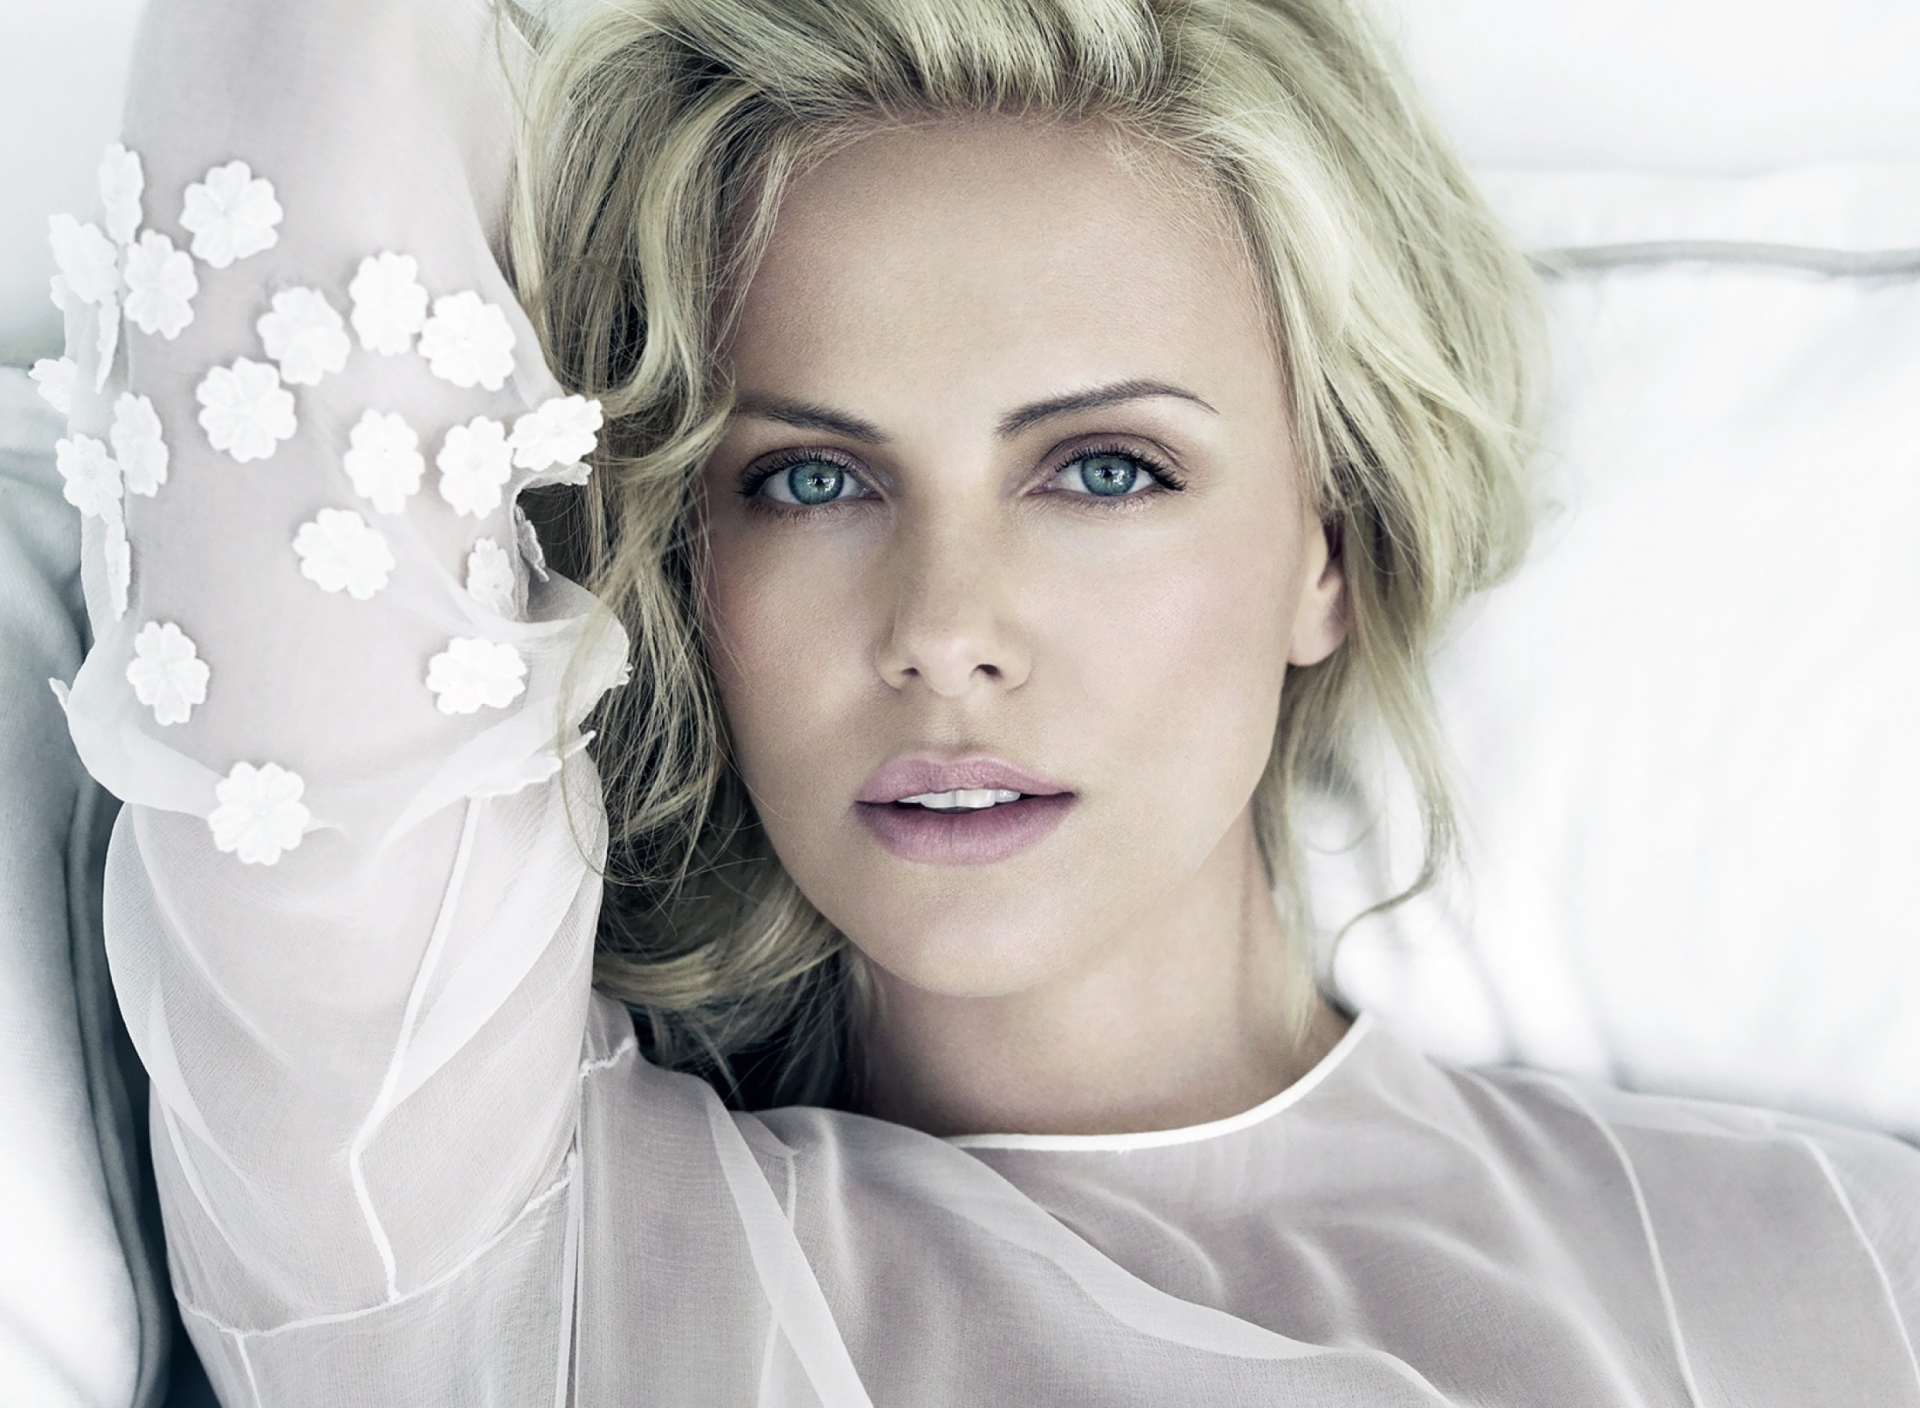 Charlize Theron screenshot #1 1920x1408